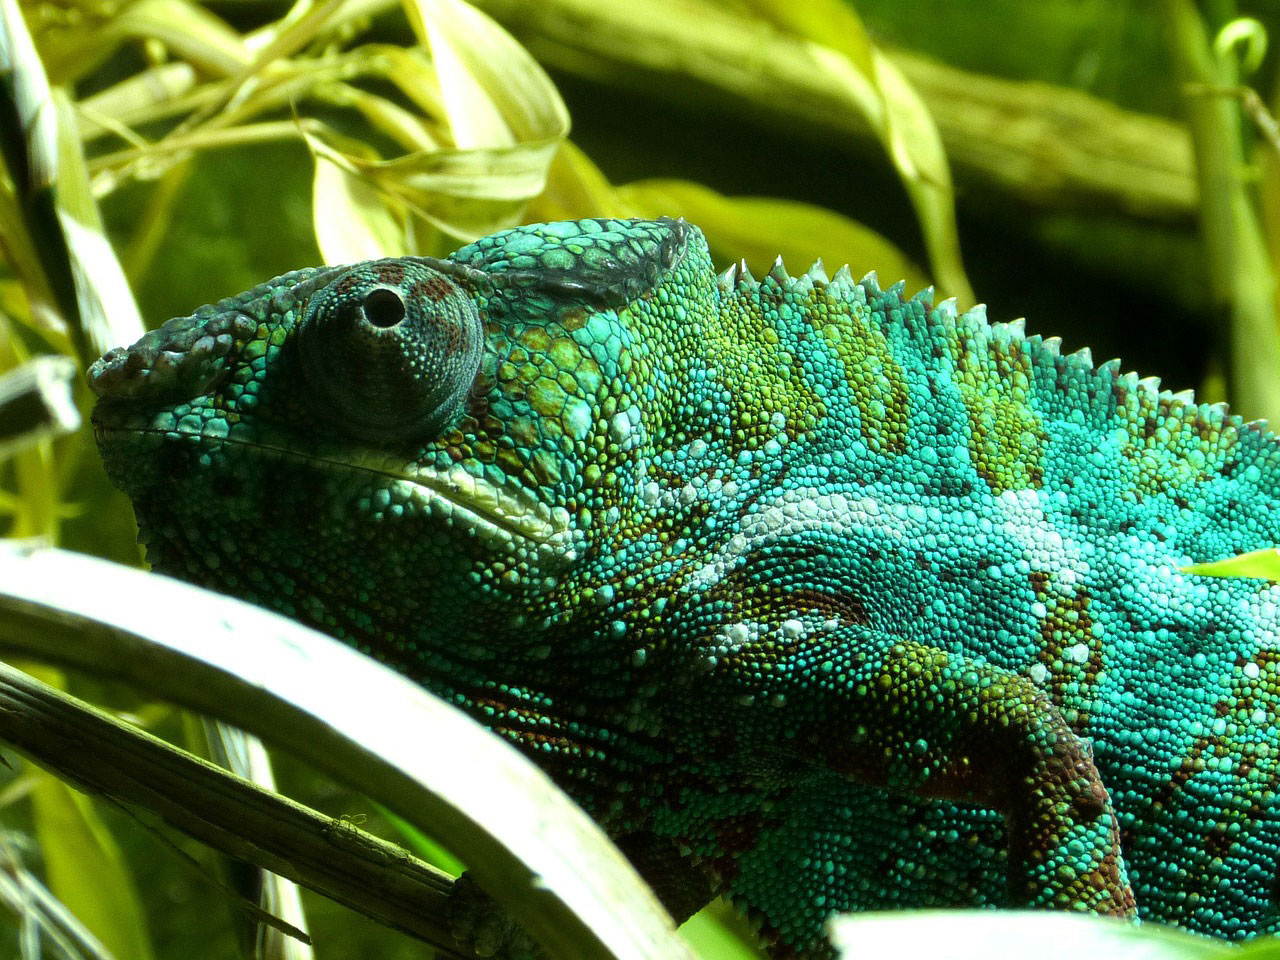 New artificial chameleon skin changes color when exposed to light